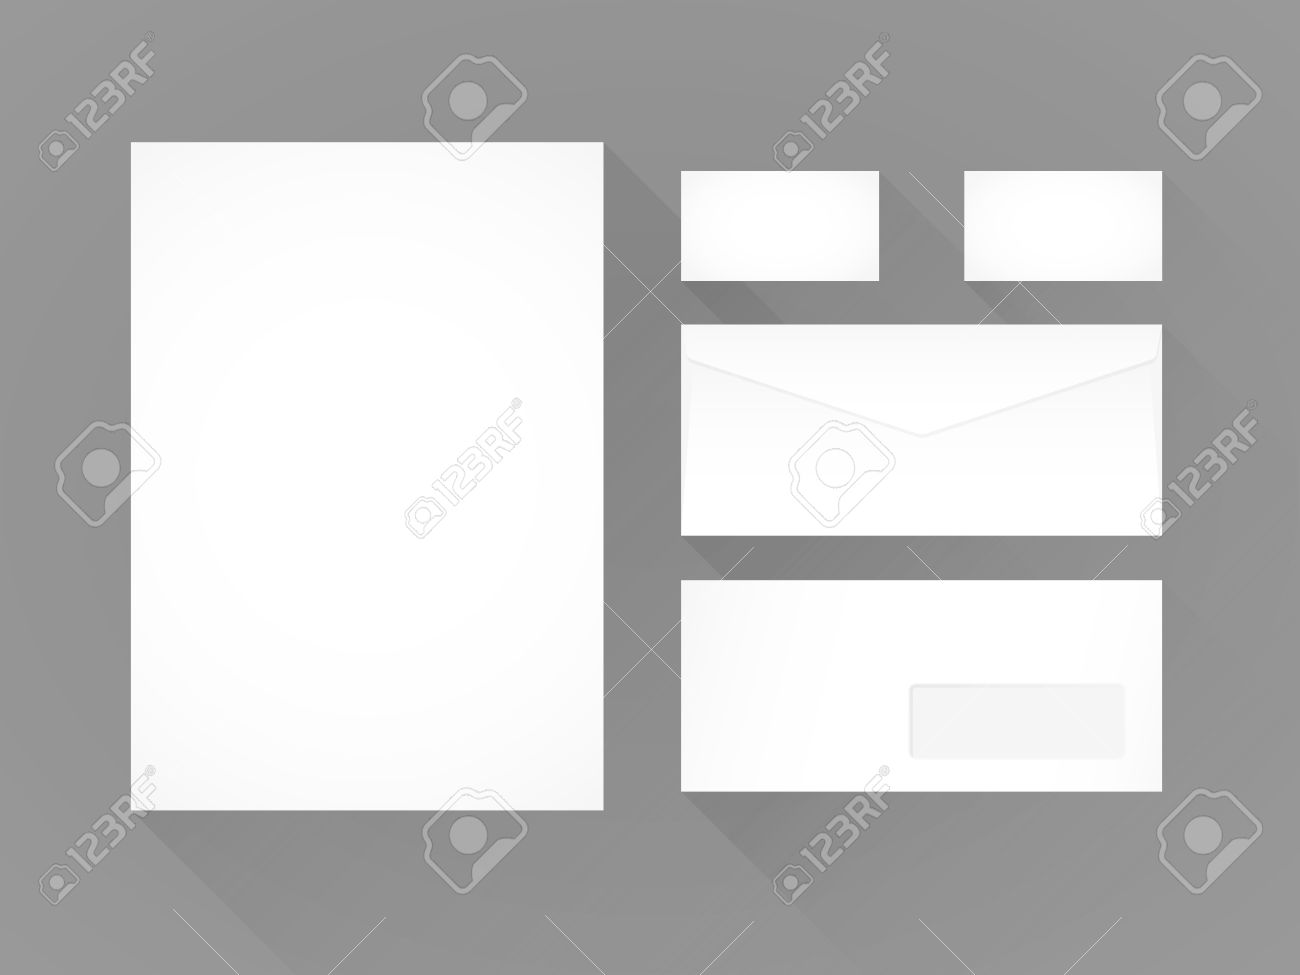 branding identity template grey background letterhead envelope